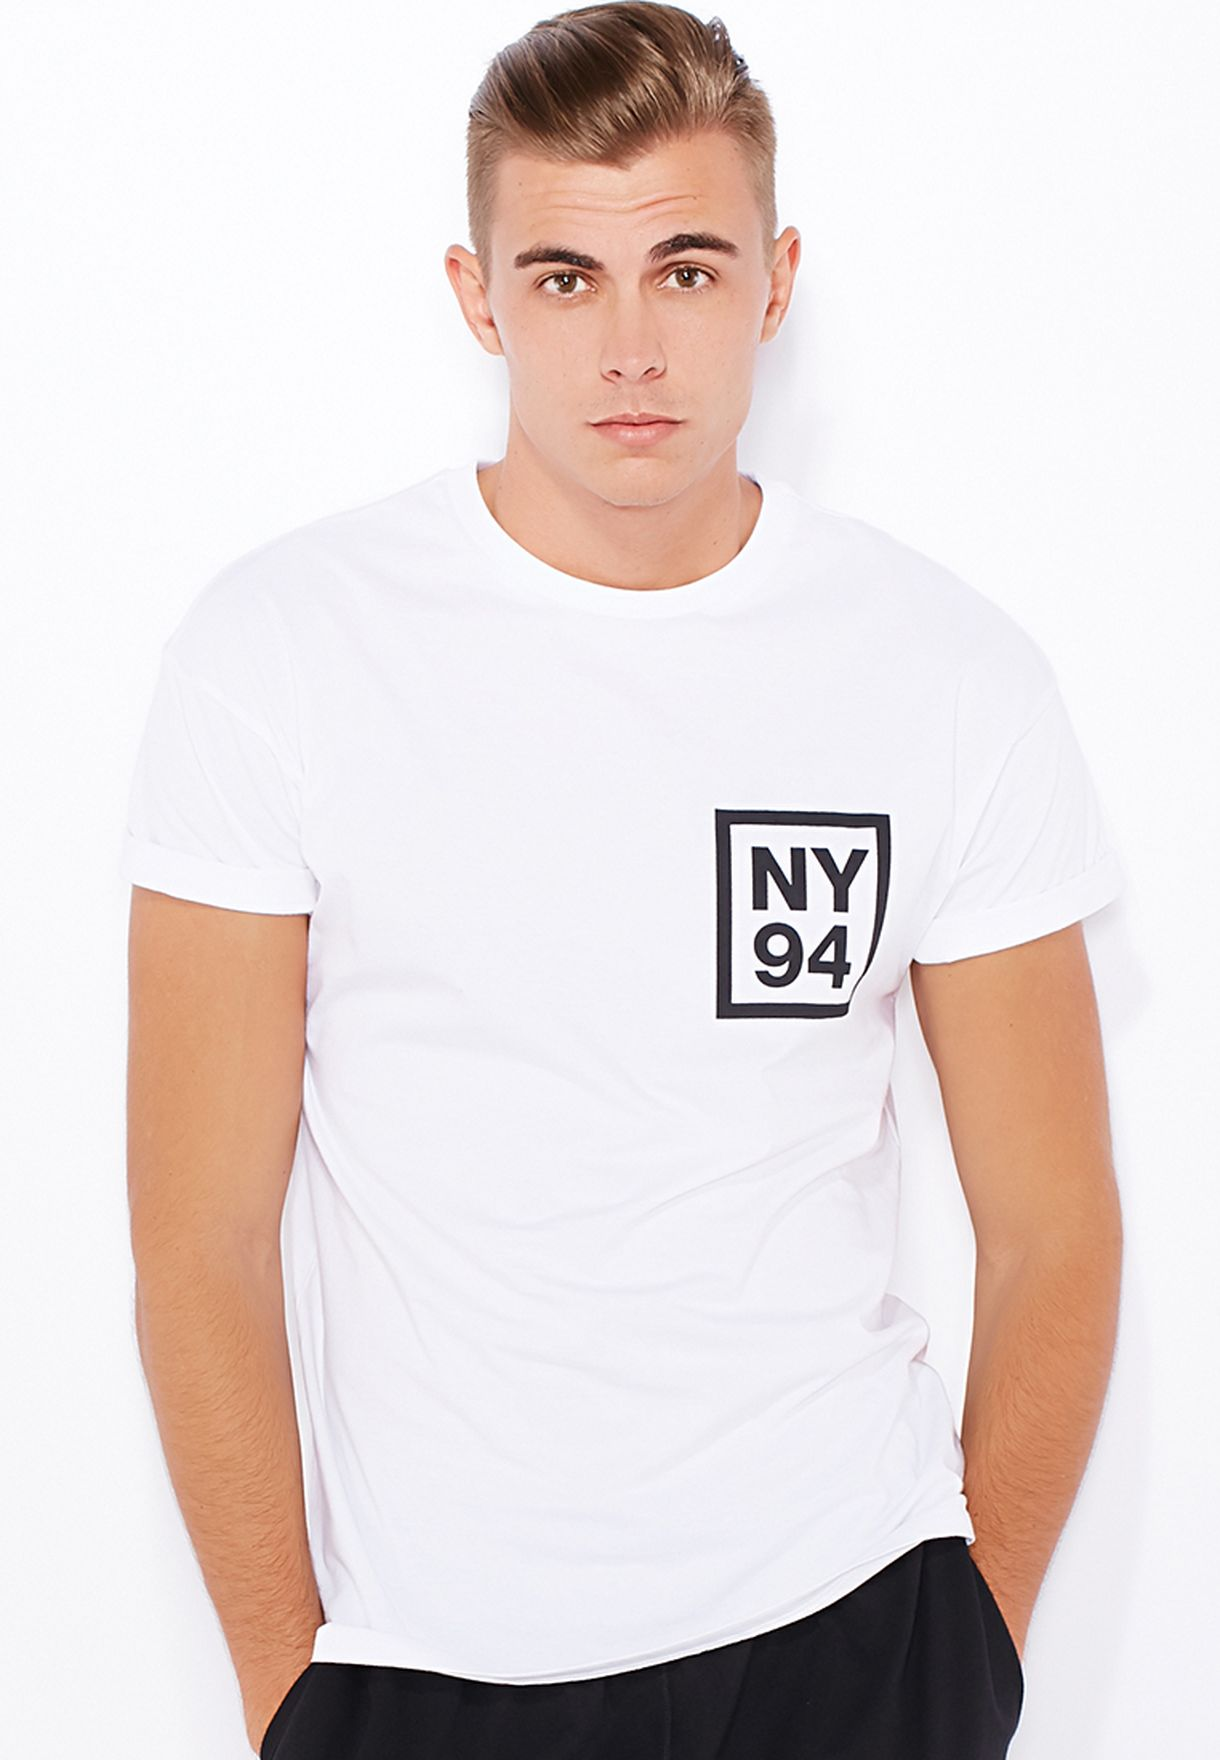 3206af0e Shop Topman white NY94 Roller T-Shirt 71Z08LWHT for Men in Qatar ...